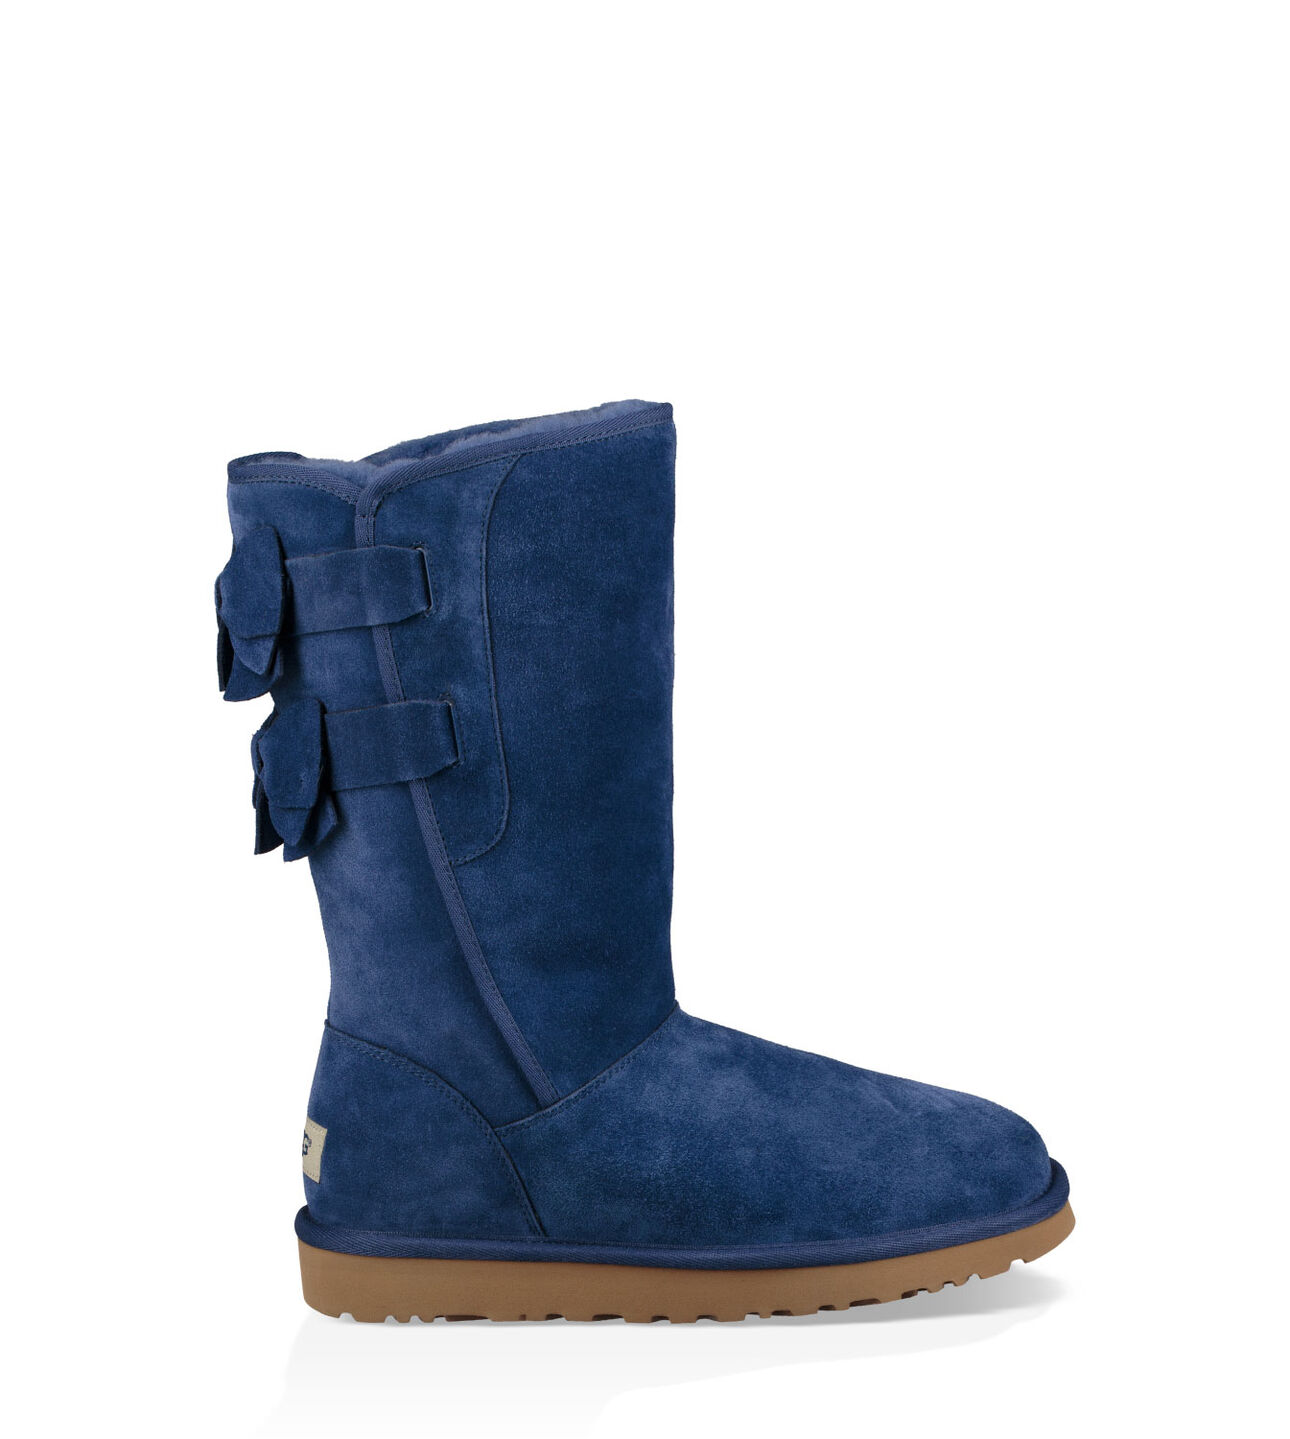 Ugg Boots King Of Prussia